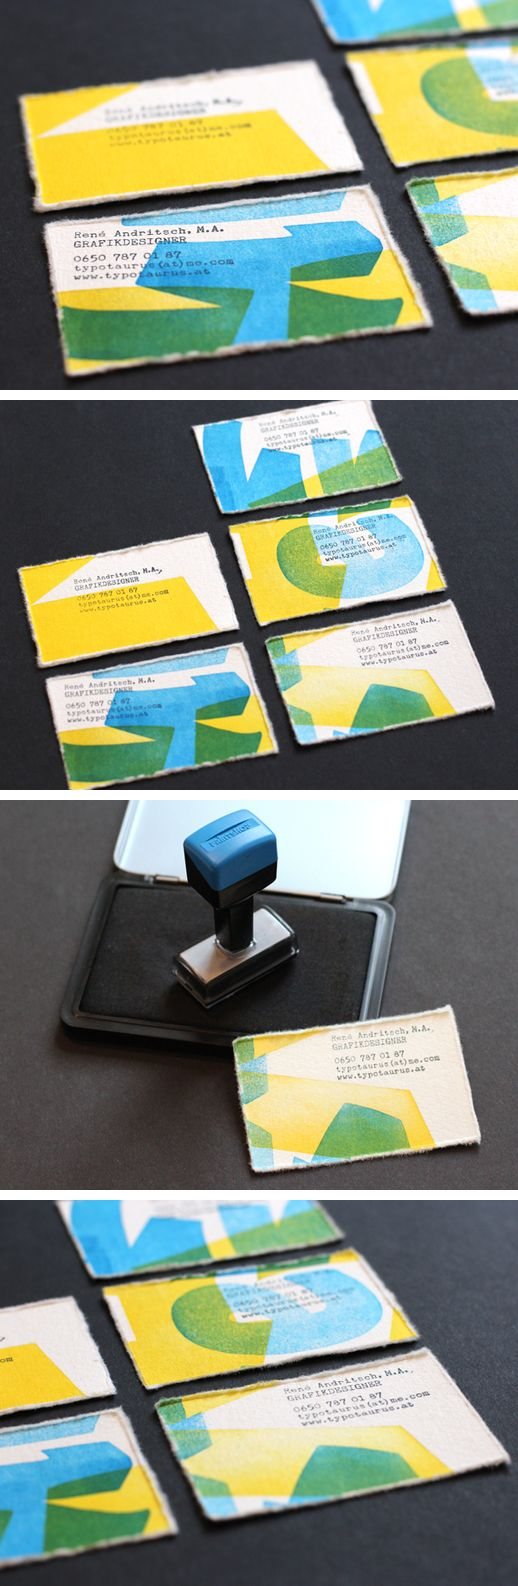 328 Best Great Business Cards Self Promotion Images On Pinterest